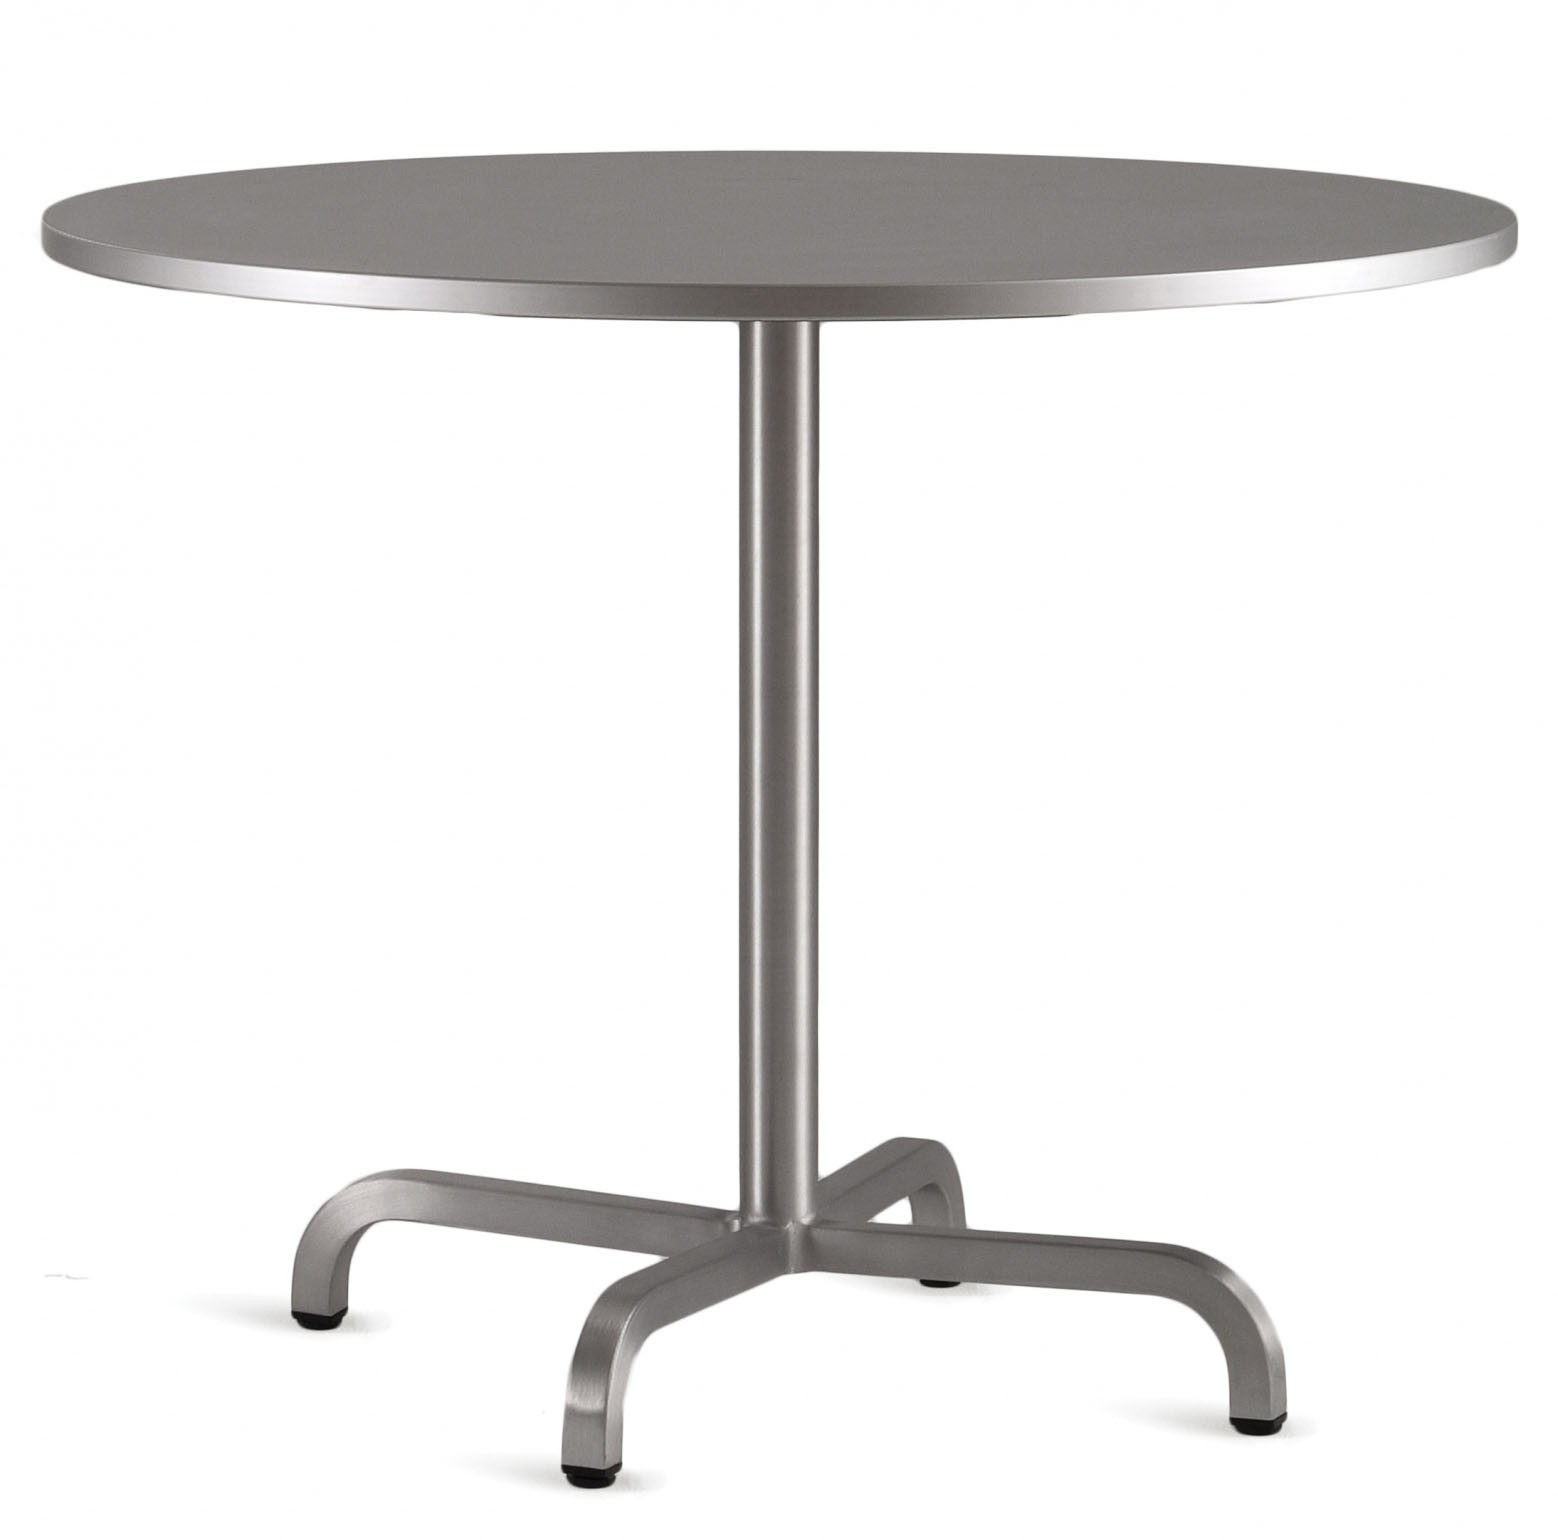 Emeco 20-06 Round Cafe Table